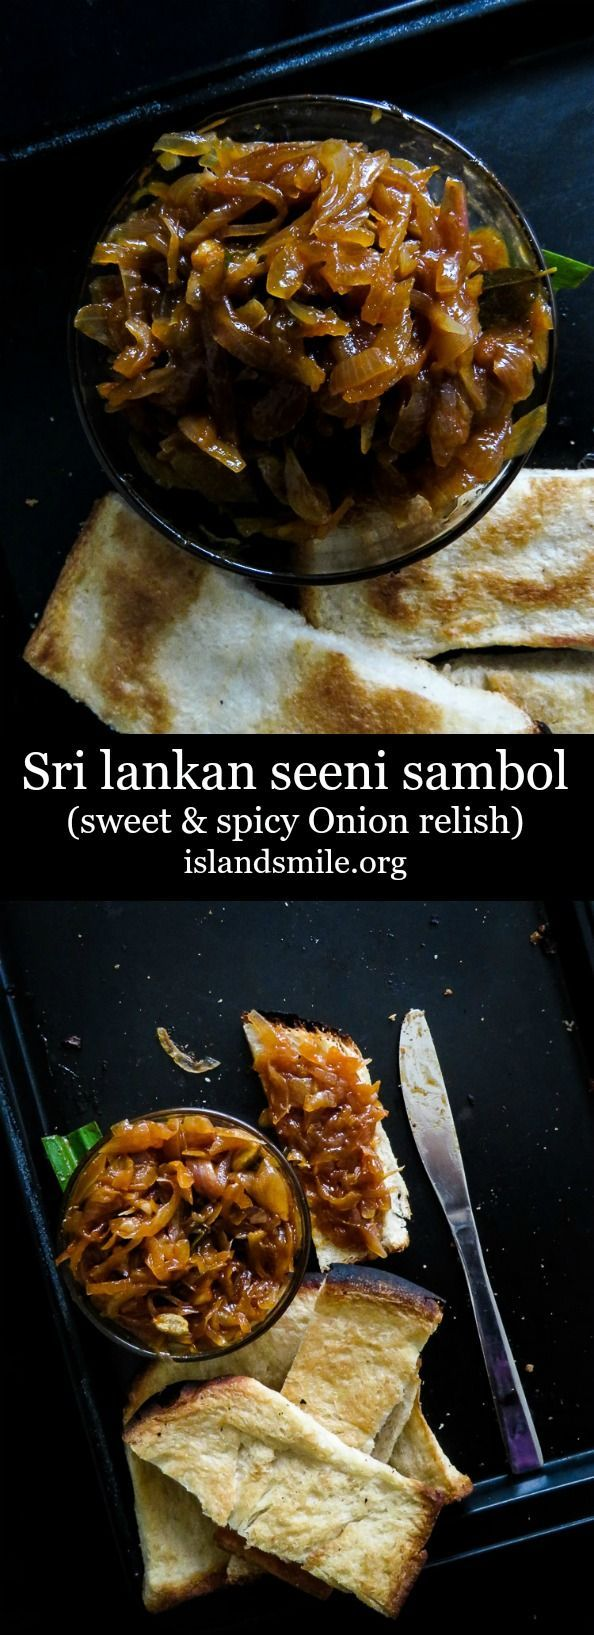 breakfast I sri lankan I condiment I onion relish I sweet and spicy I recipe I cooking. Sri Lankan Seeni sambol, a sweet and spicy onion relish. Make a jar of this condiment to make your meals enjoyable and add flavor to anything from crackers to plain bread